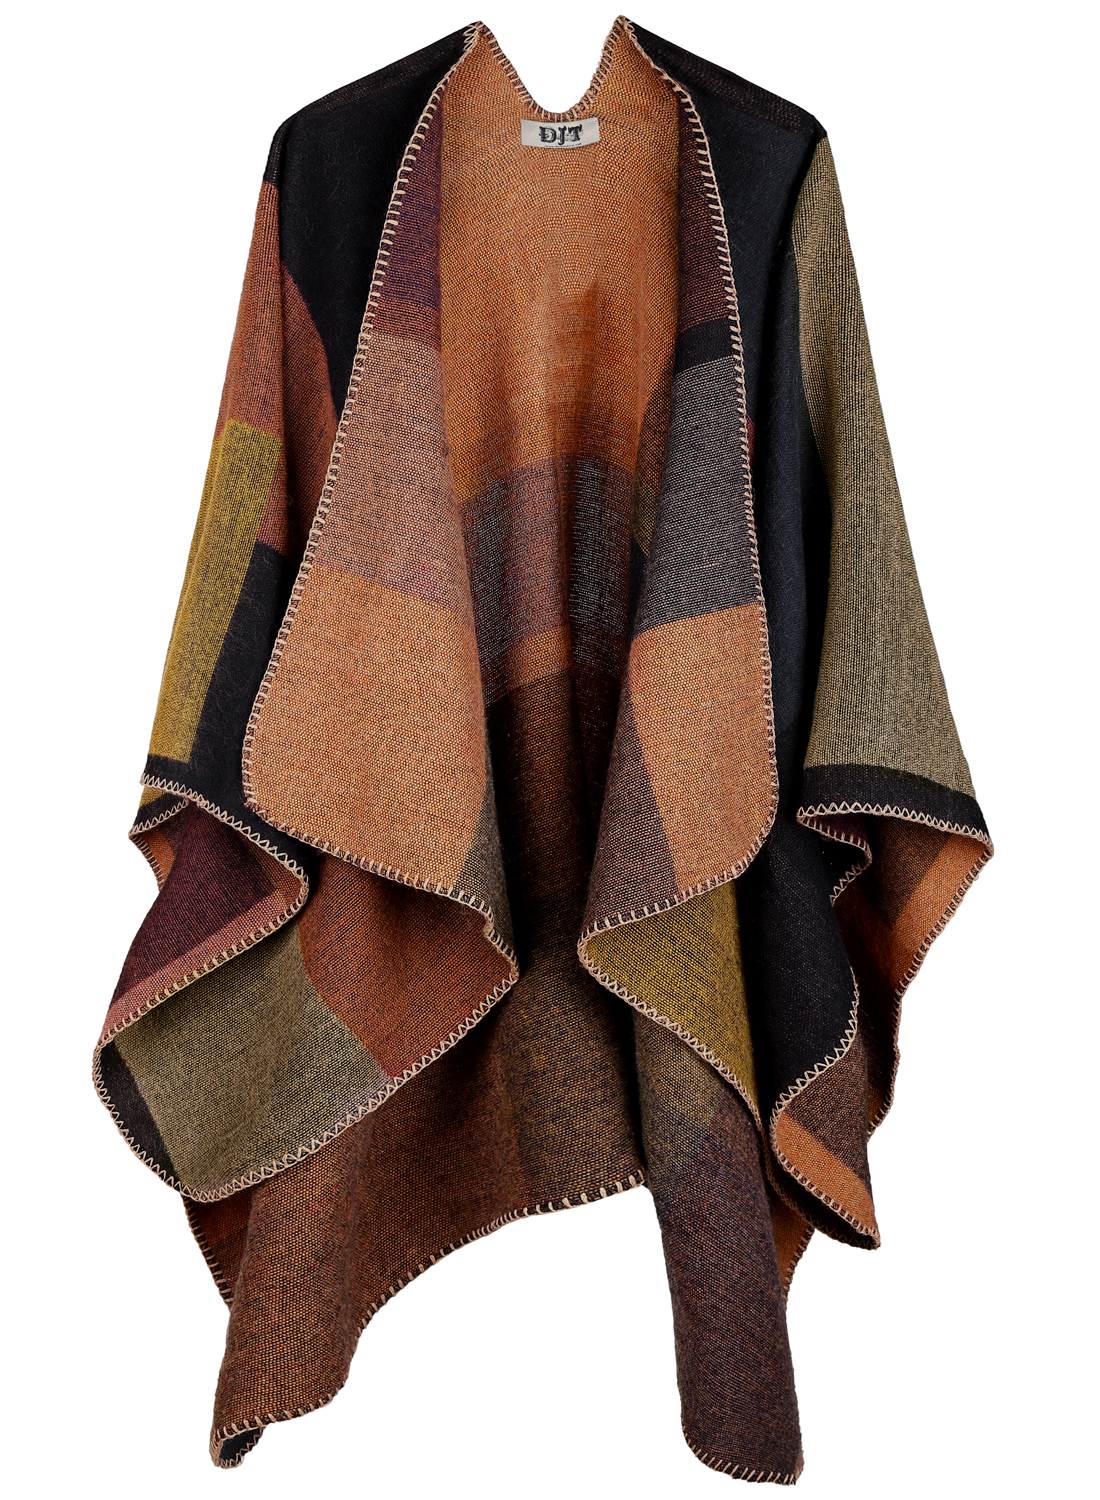 DJT Women's Plaid Pattern Wrap Shawl Poncho Cape One Size Khaki by DJT